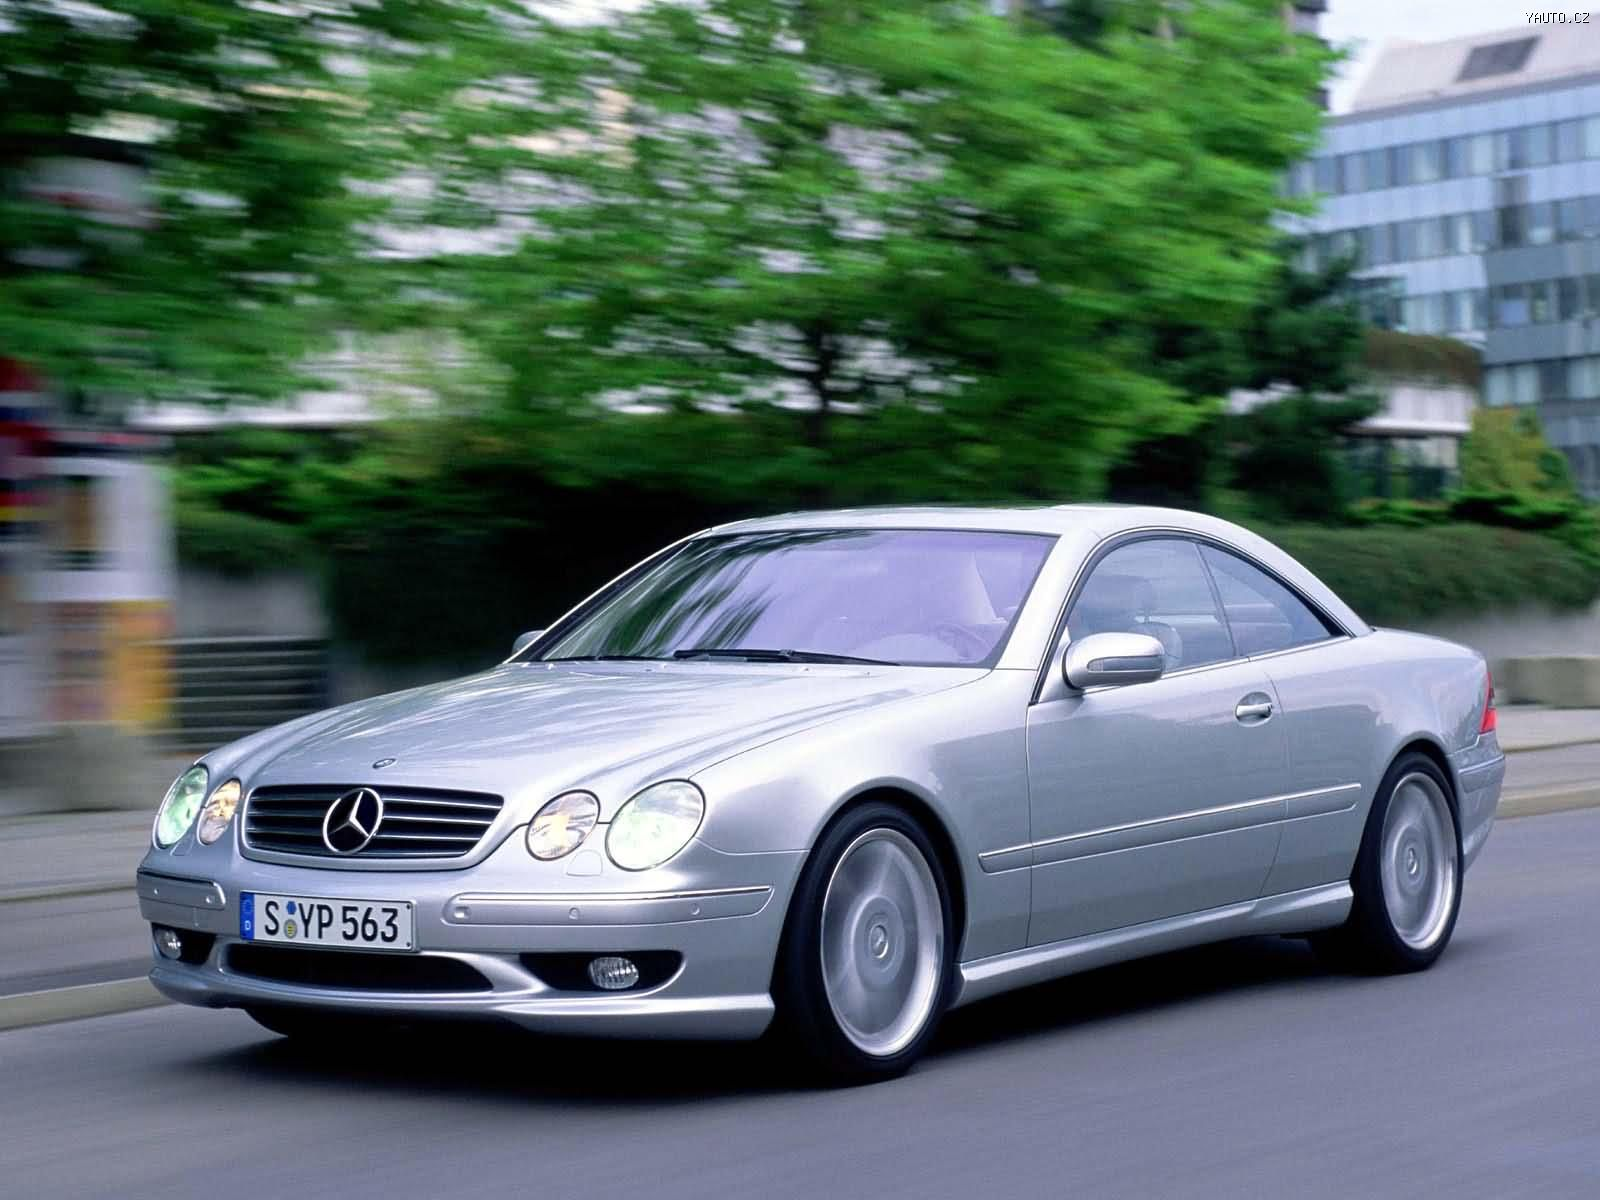 Mercedes benz cl55 amg 2000 auta na plochu tapety na for Mercedes benz 600 amg